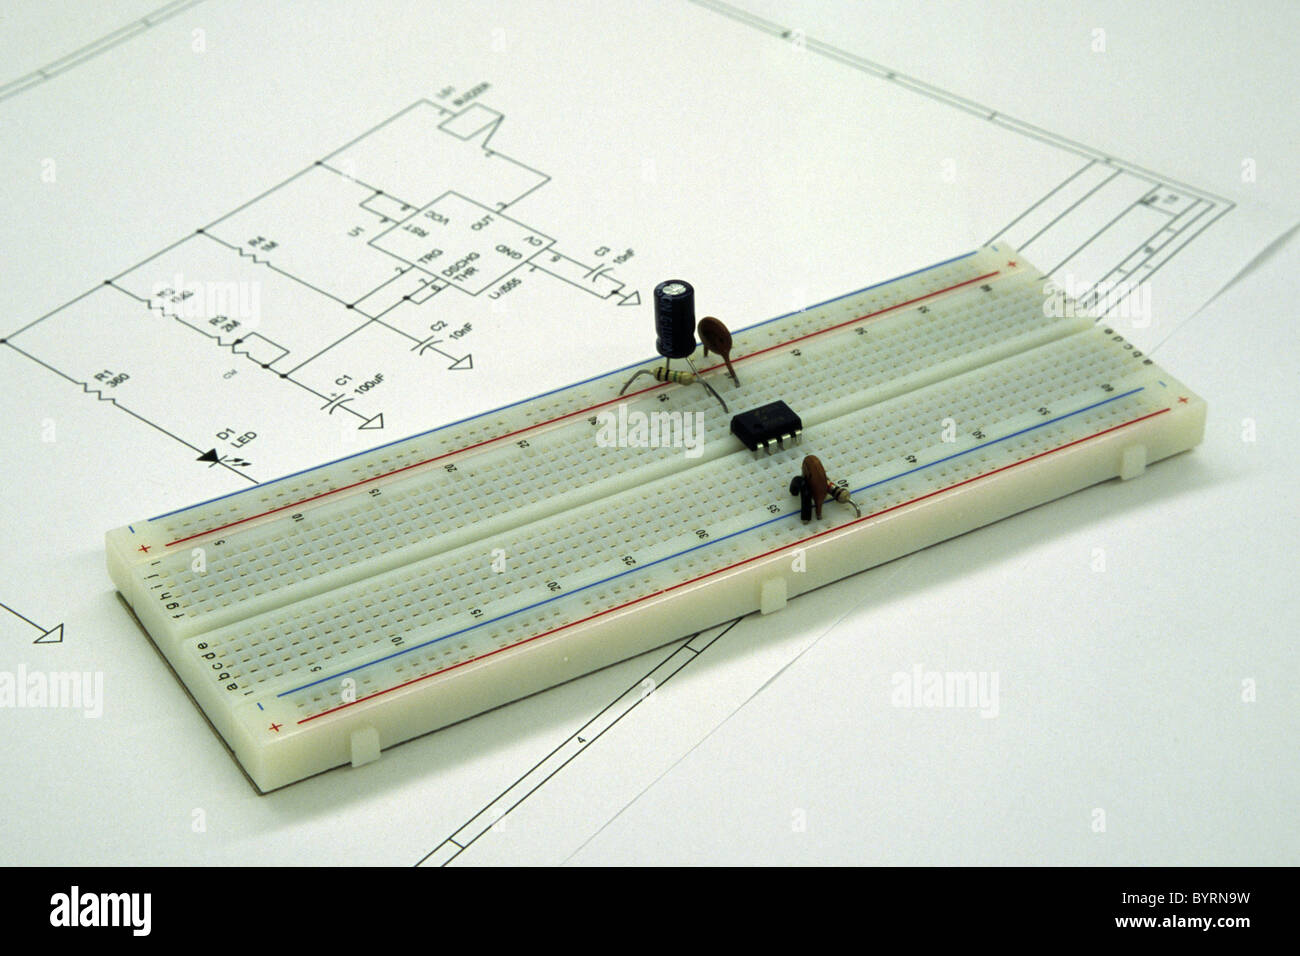 hight resolution of an electronic breadboard with components matching the circuit diagram